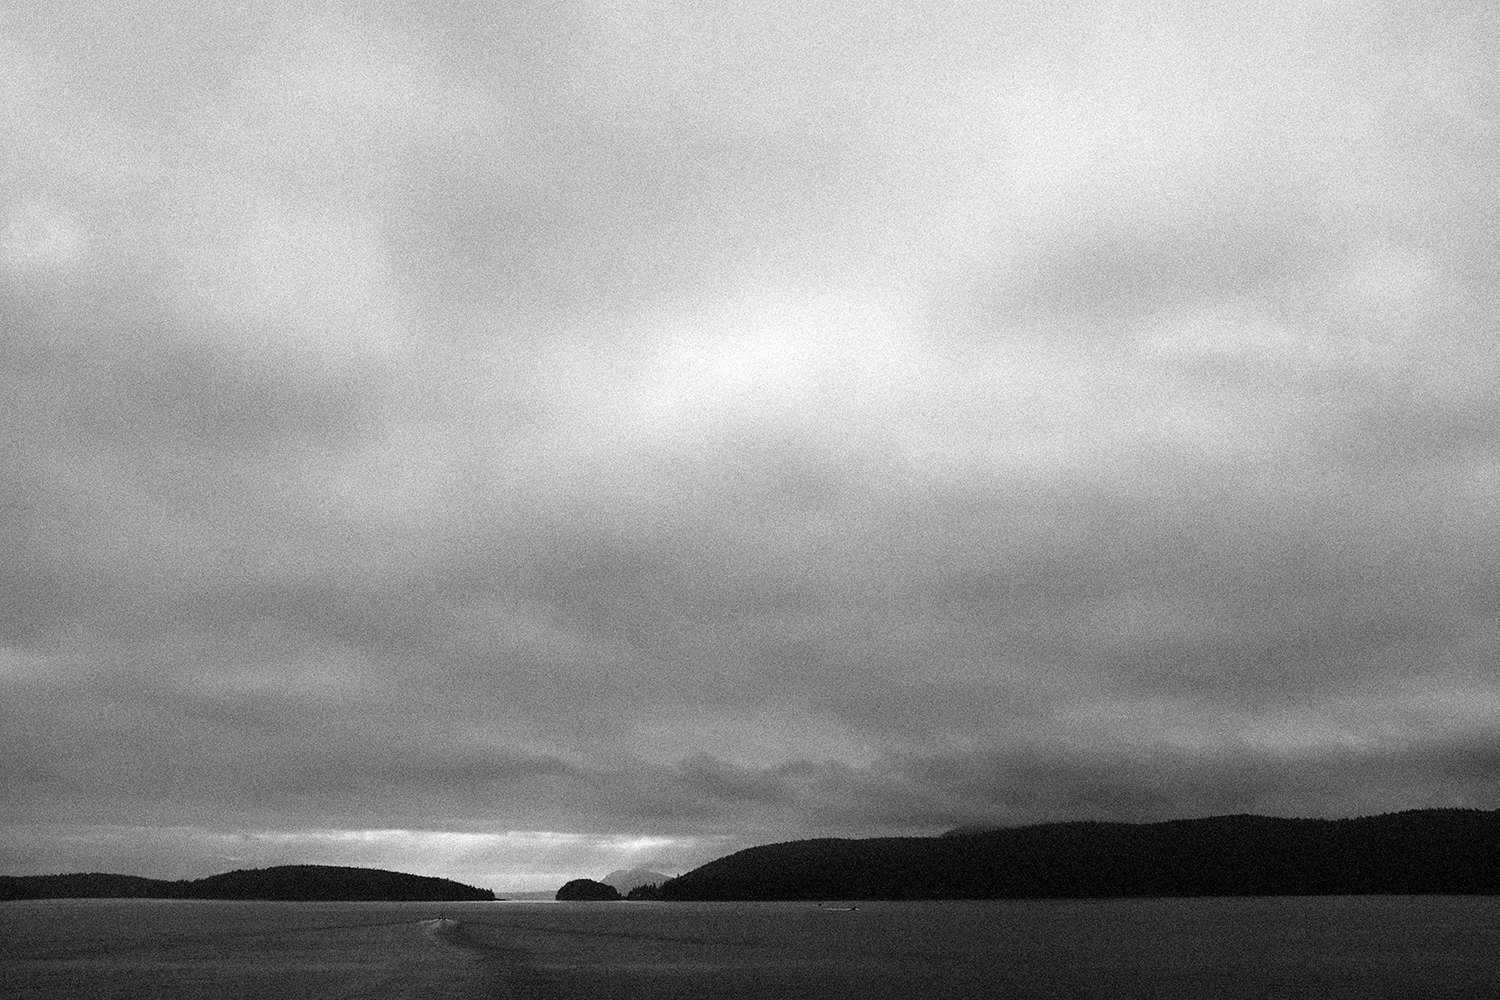 Sunset through the dense cloud cover during the ferry ride from Anacortes, WA to Orcas Island.